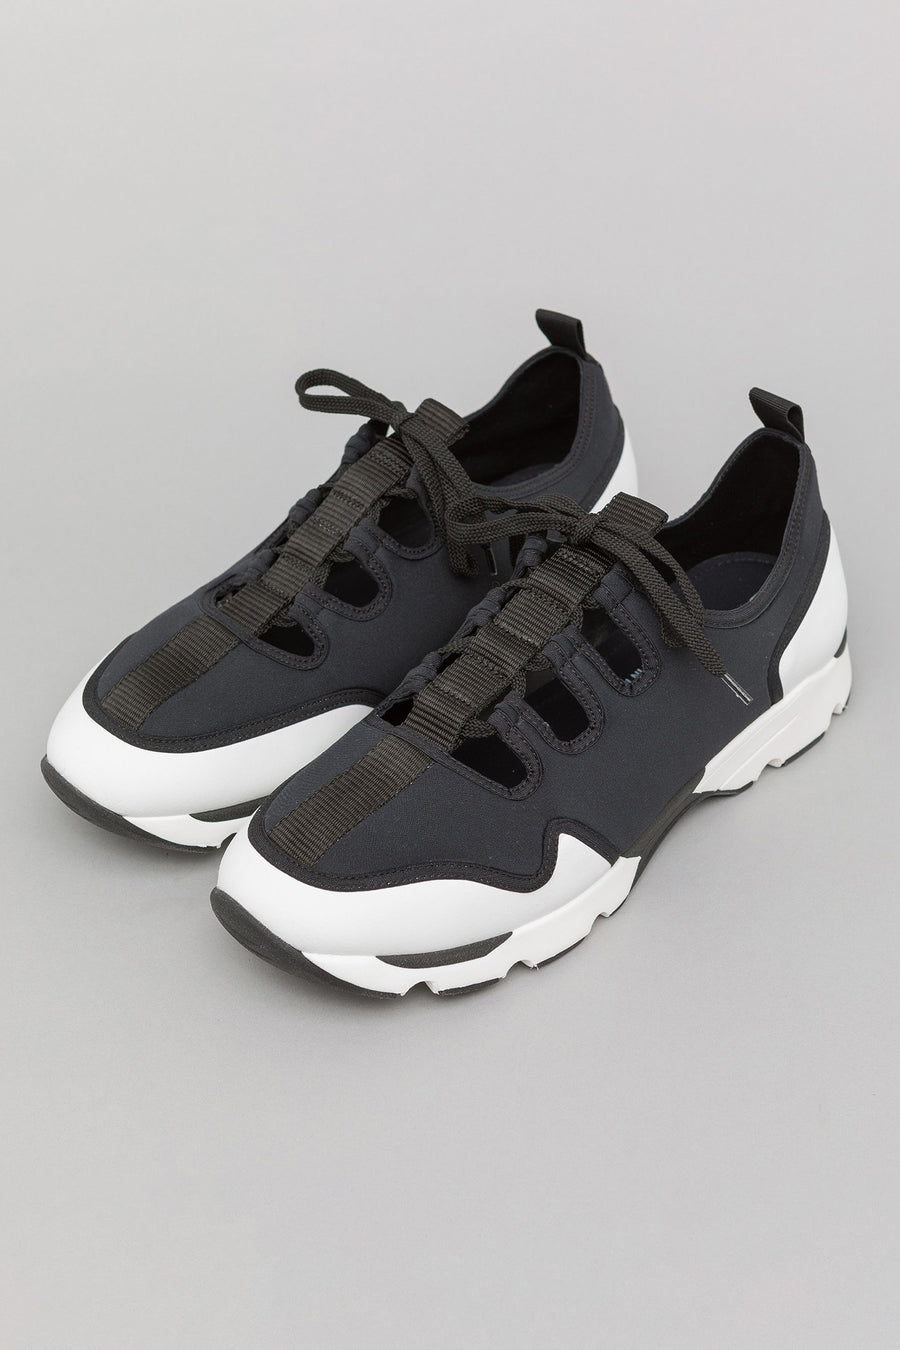 Marni Neoprene Ghillie Sneaker in Black/White - Notre